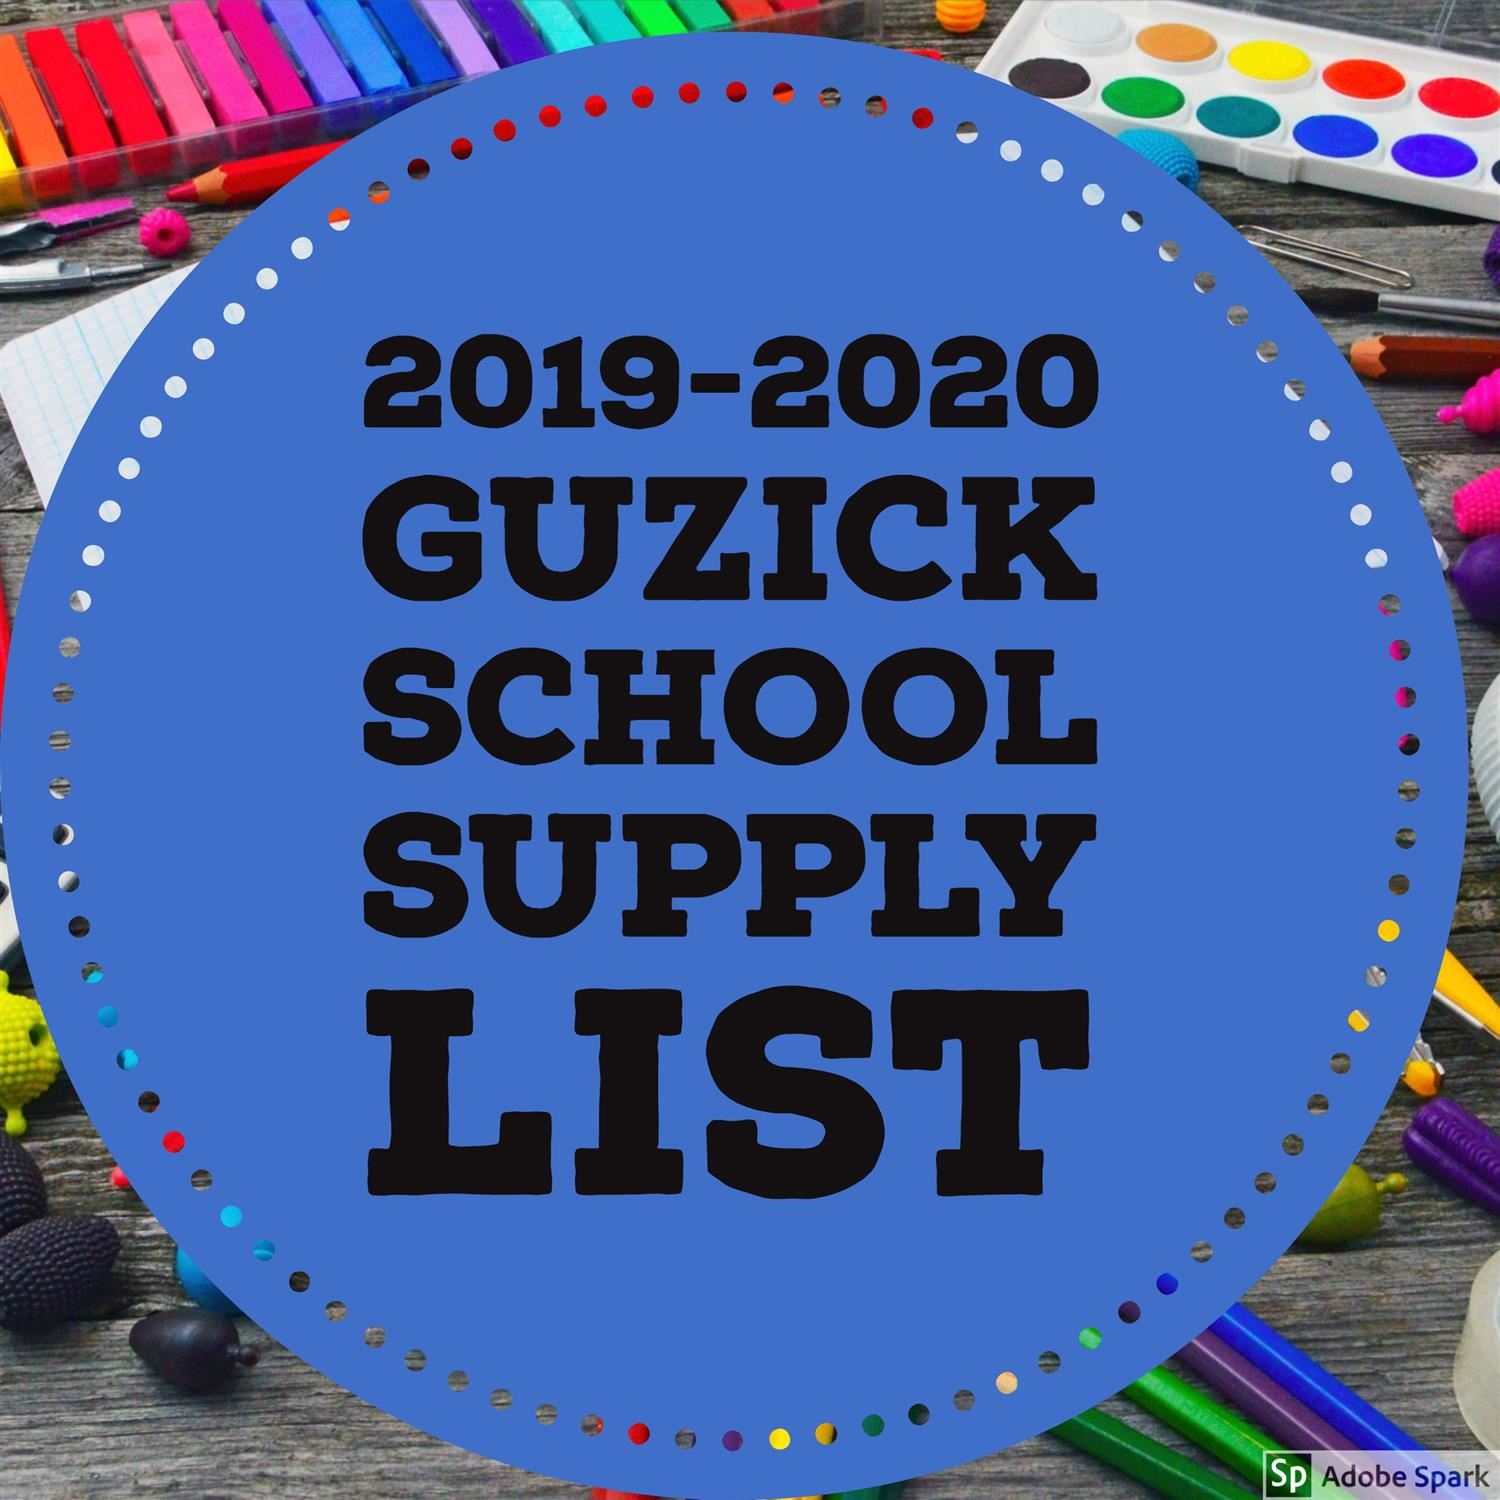 2019-2020 Guzick School Supplies